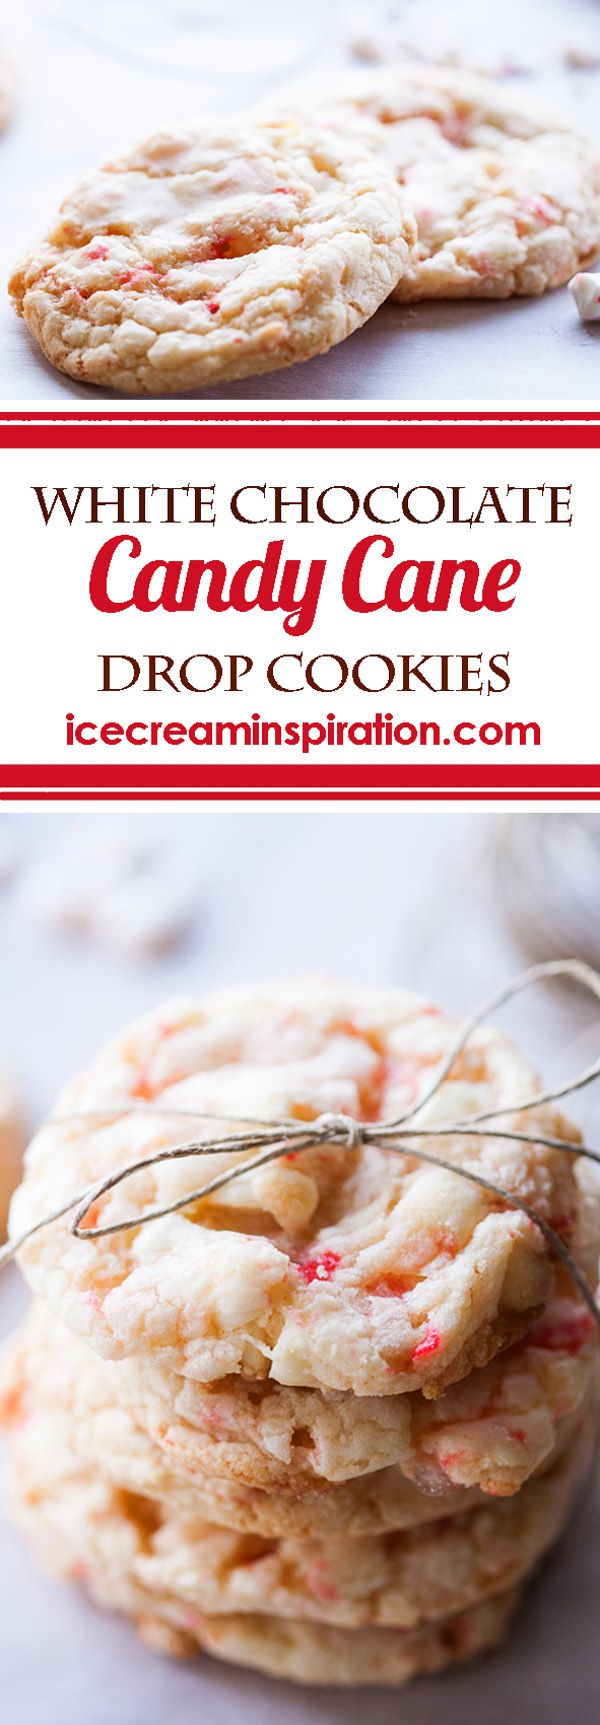 ~ White Chocolate Candy Cane Drop Cookies ~ icecreaminspirations.com